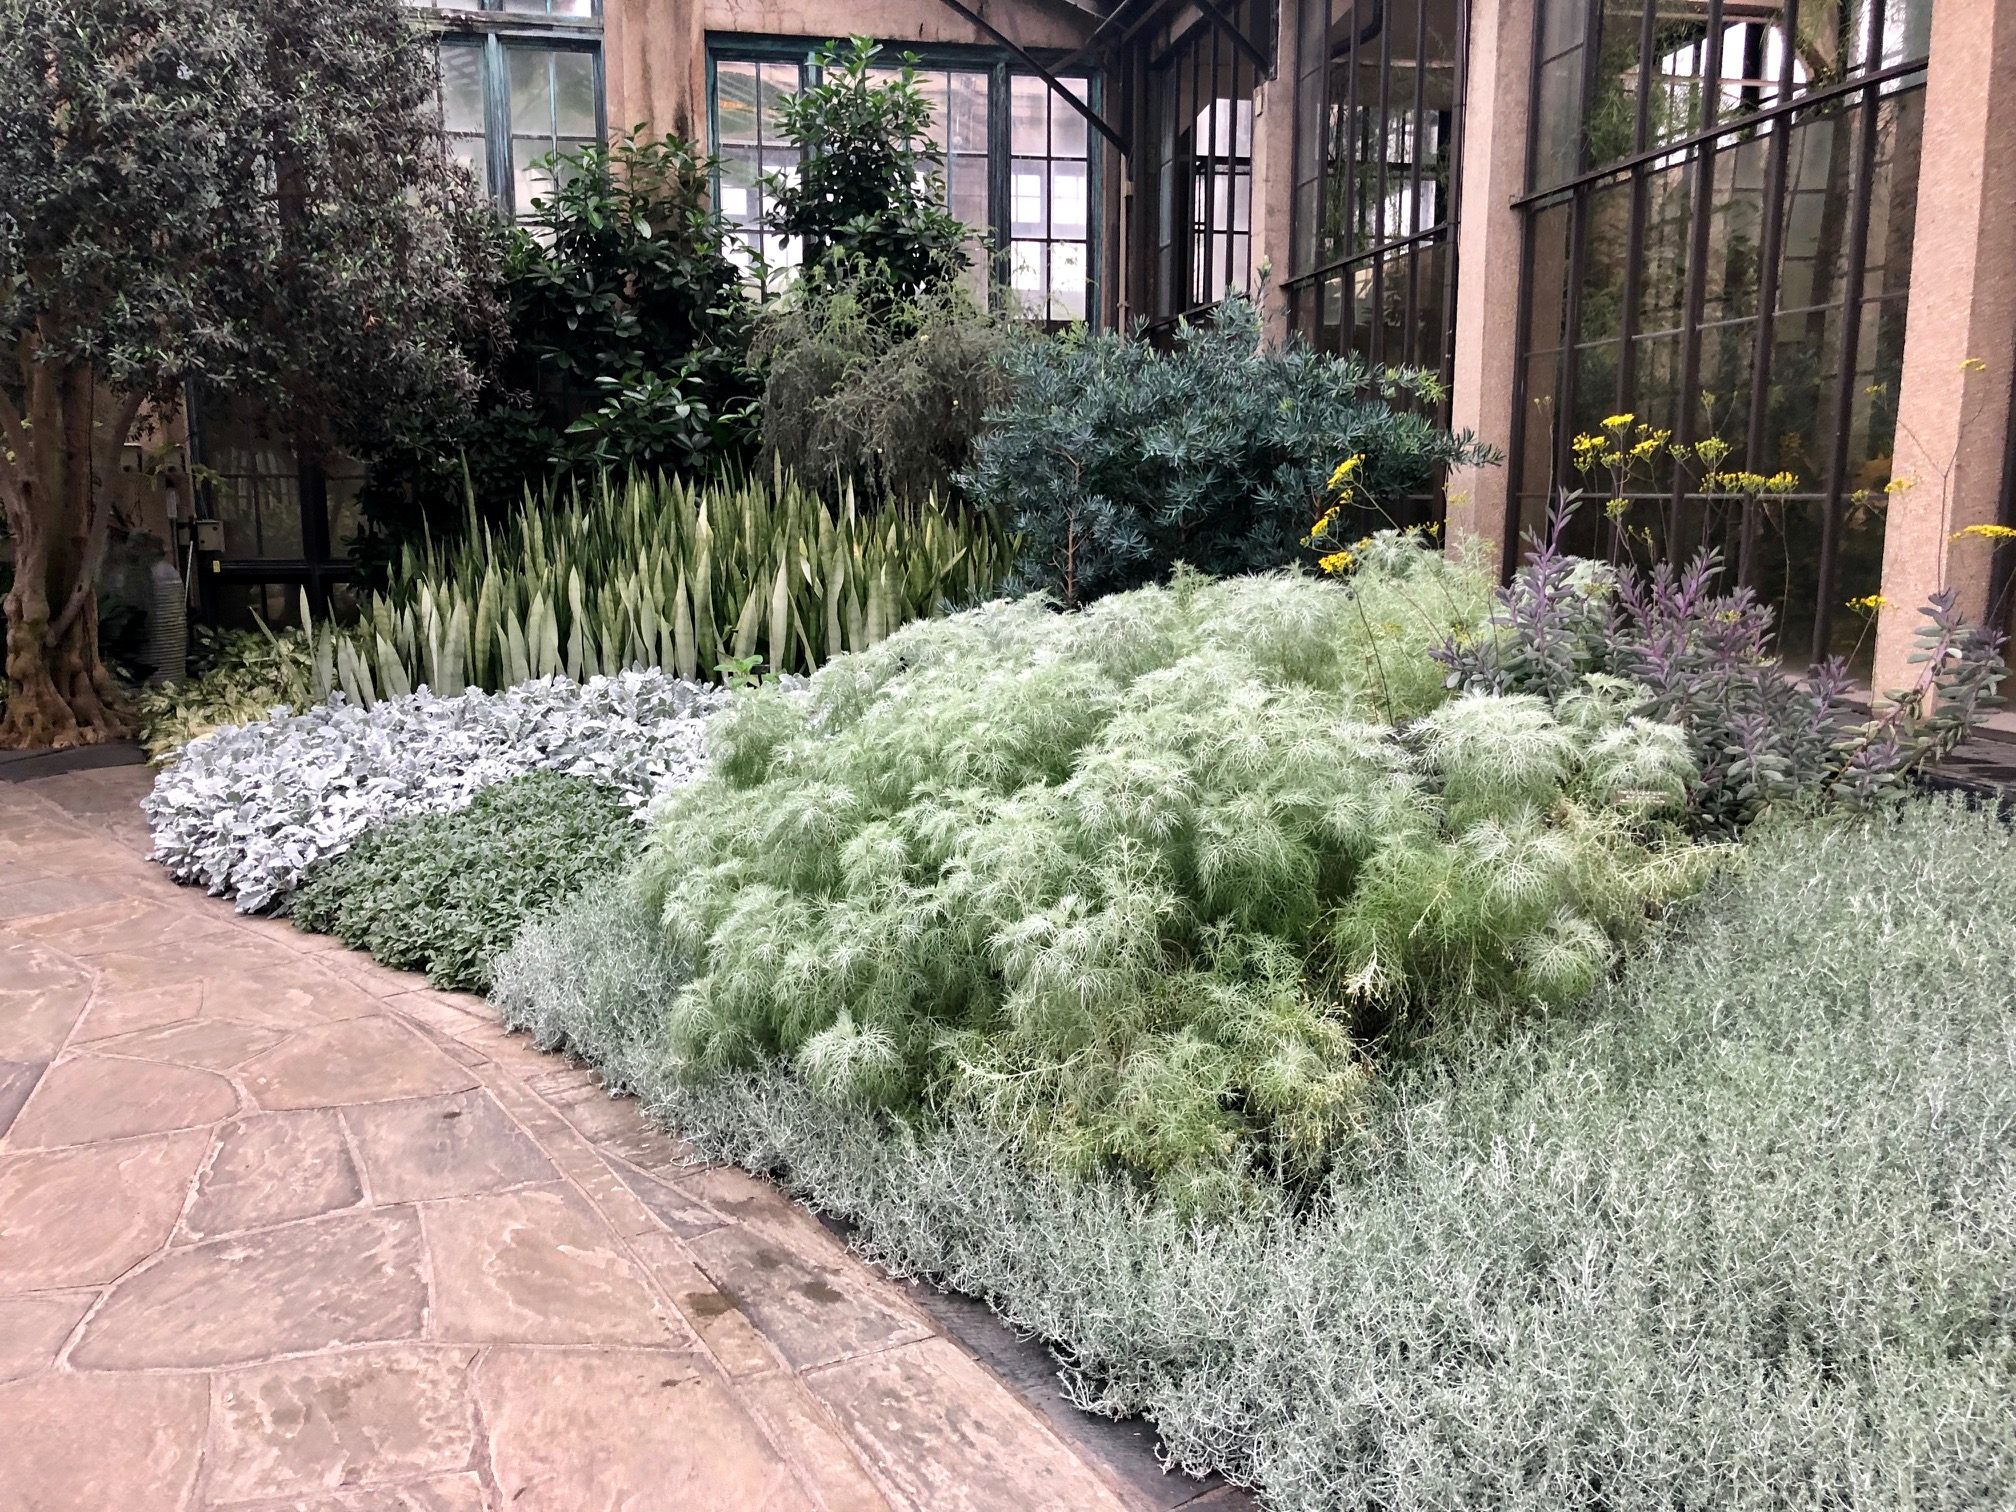 Swapping Perennials for Annual Color - taking Inspiration from the Silver Garden at Longwood Gardens. Thinking Outisde the Boxwood